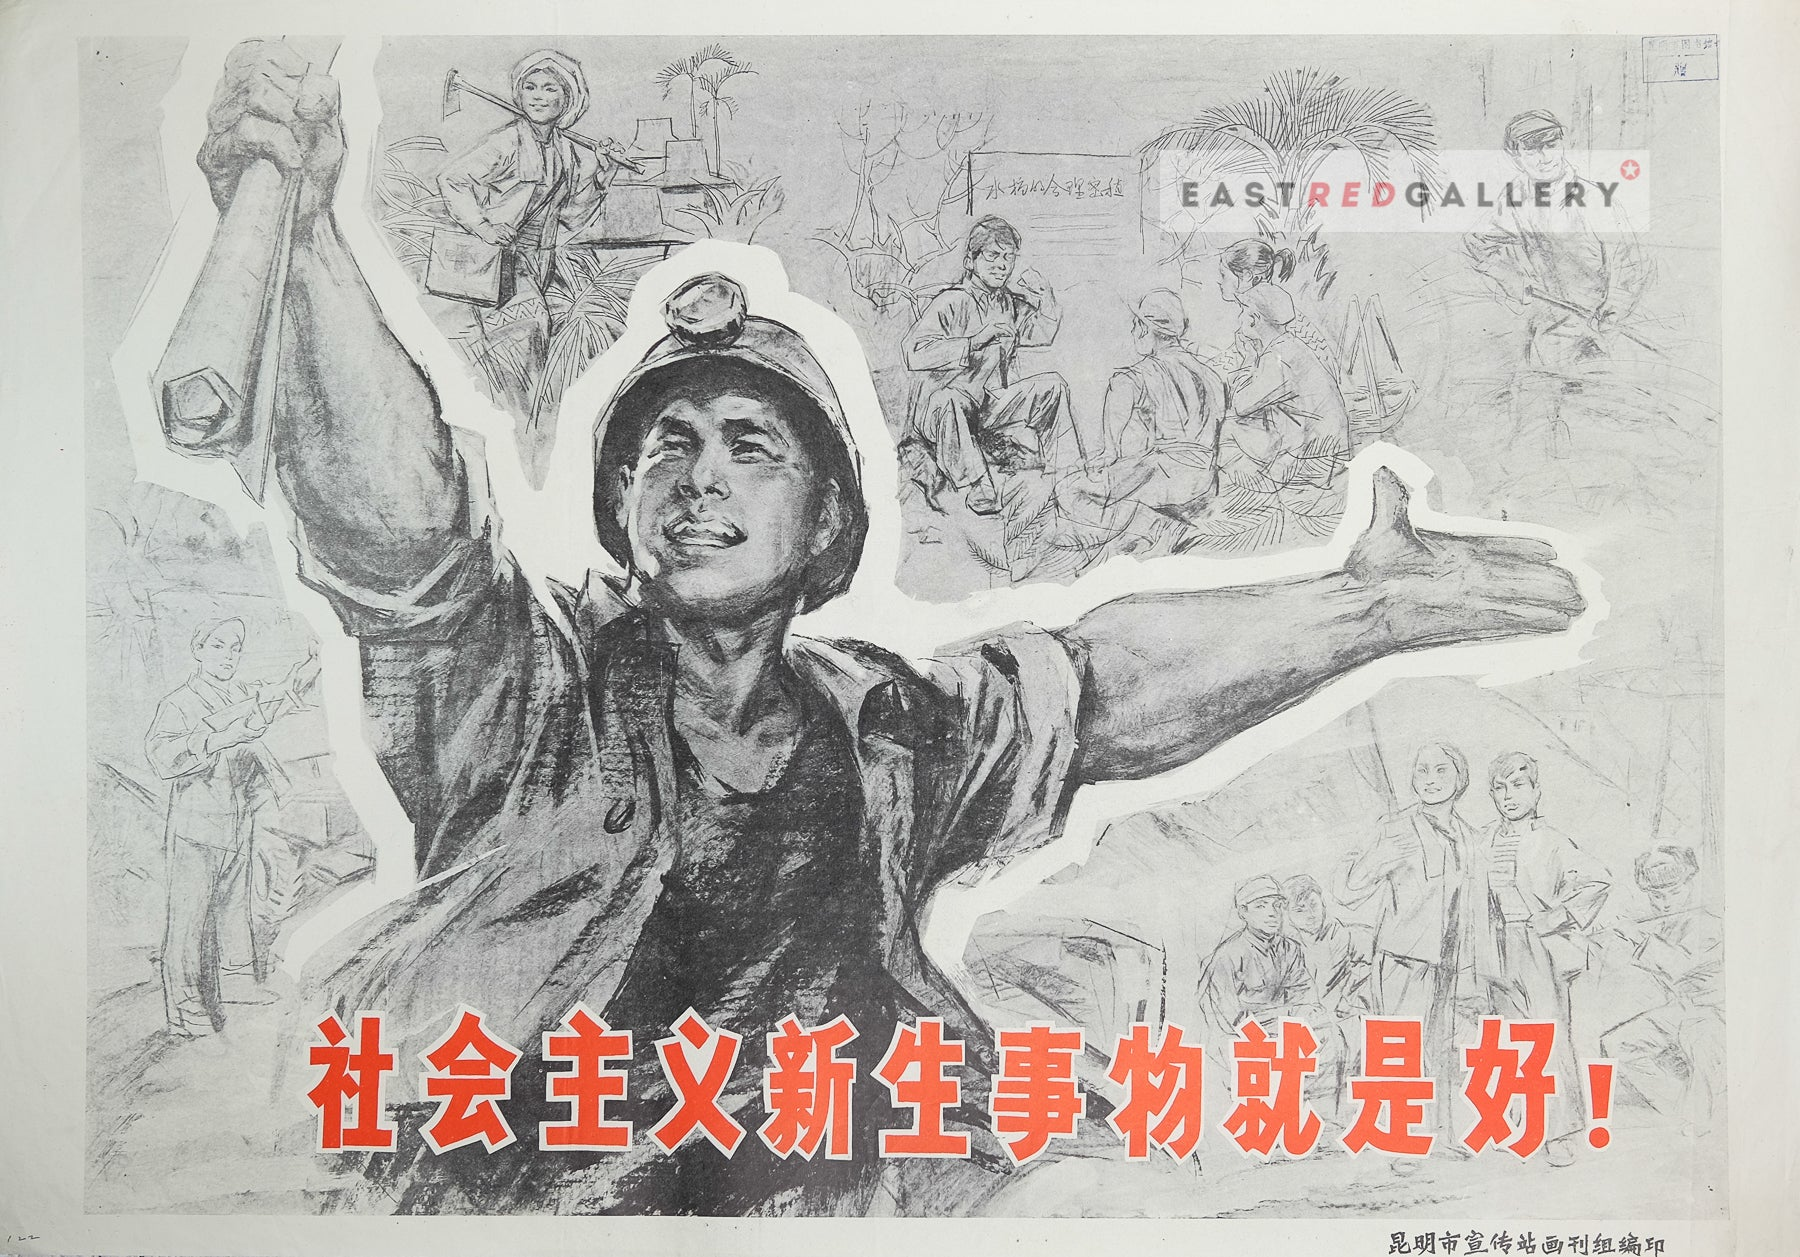 image of 1976 Chinese propaganda poster The new things in socialism are good!